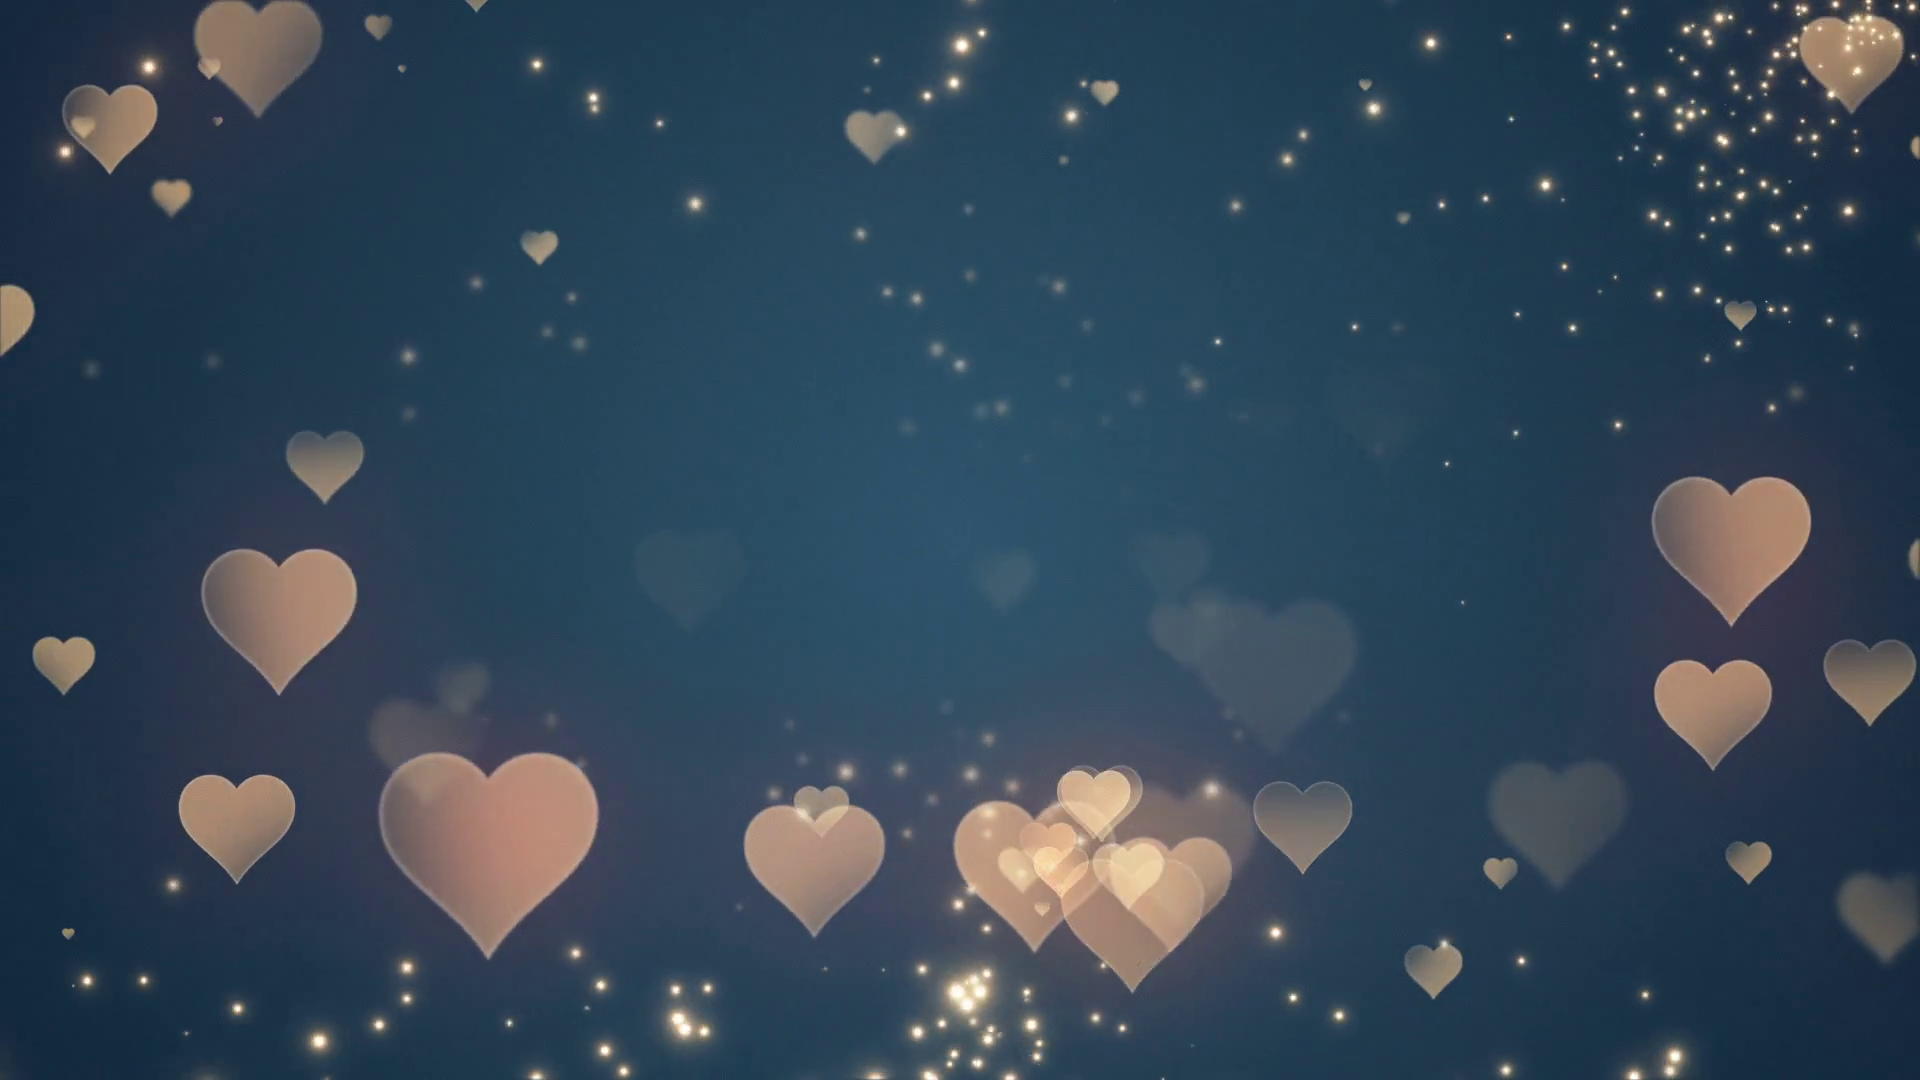 Floating Little Hearts Glowing Twinkling Sparkling - Gold Blue Hearts Background , HD Wallpaper & Backgrounds